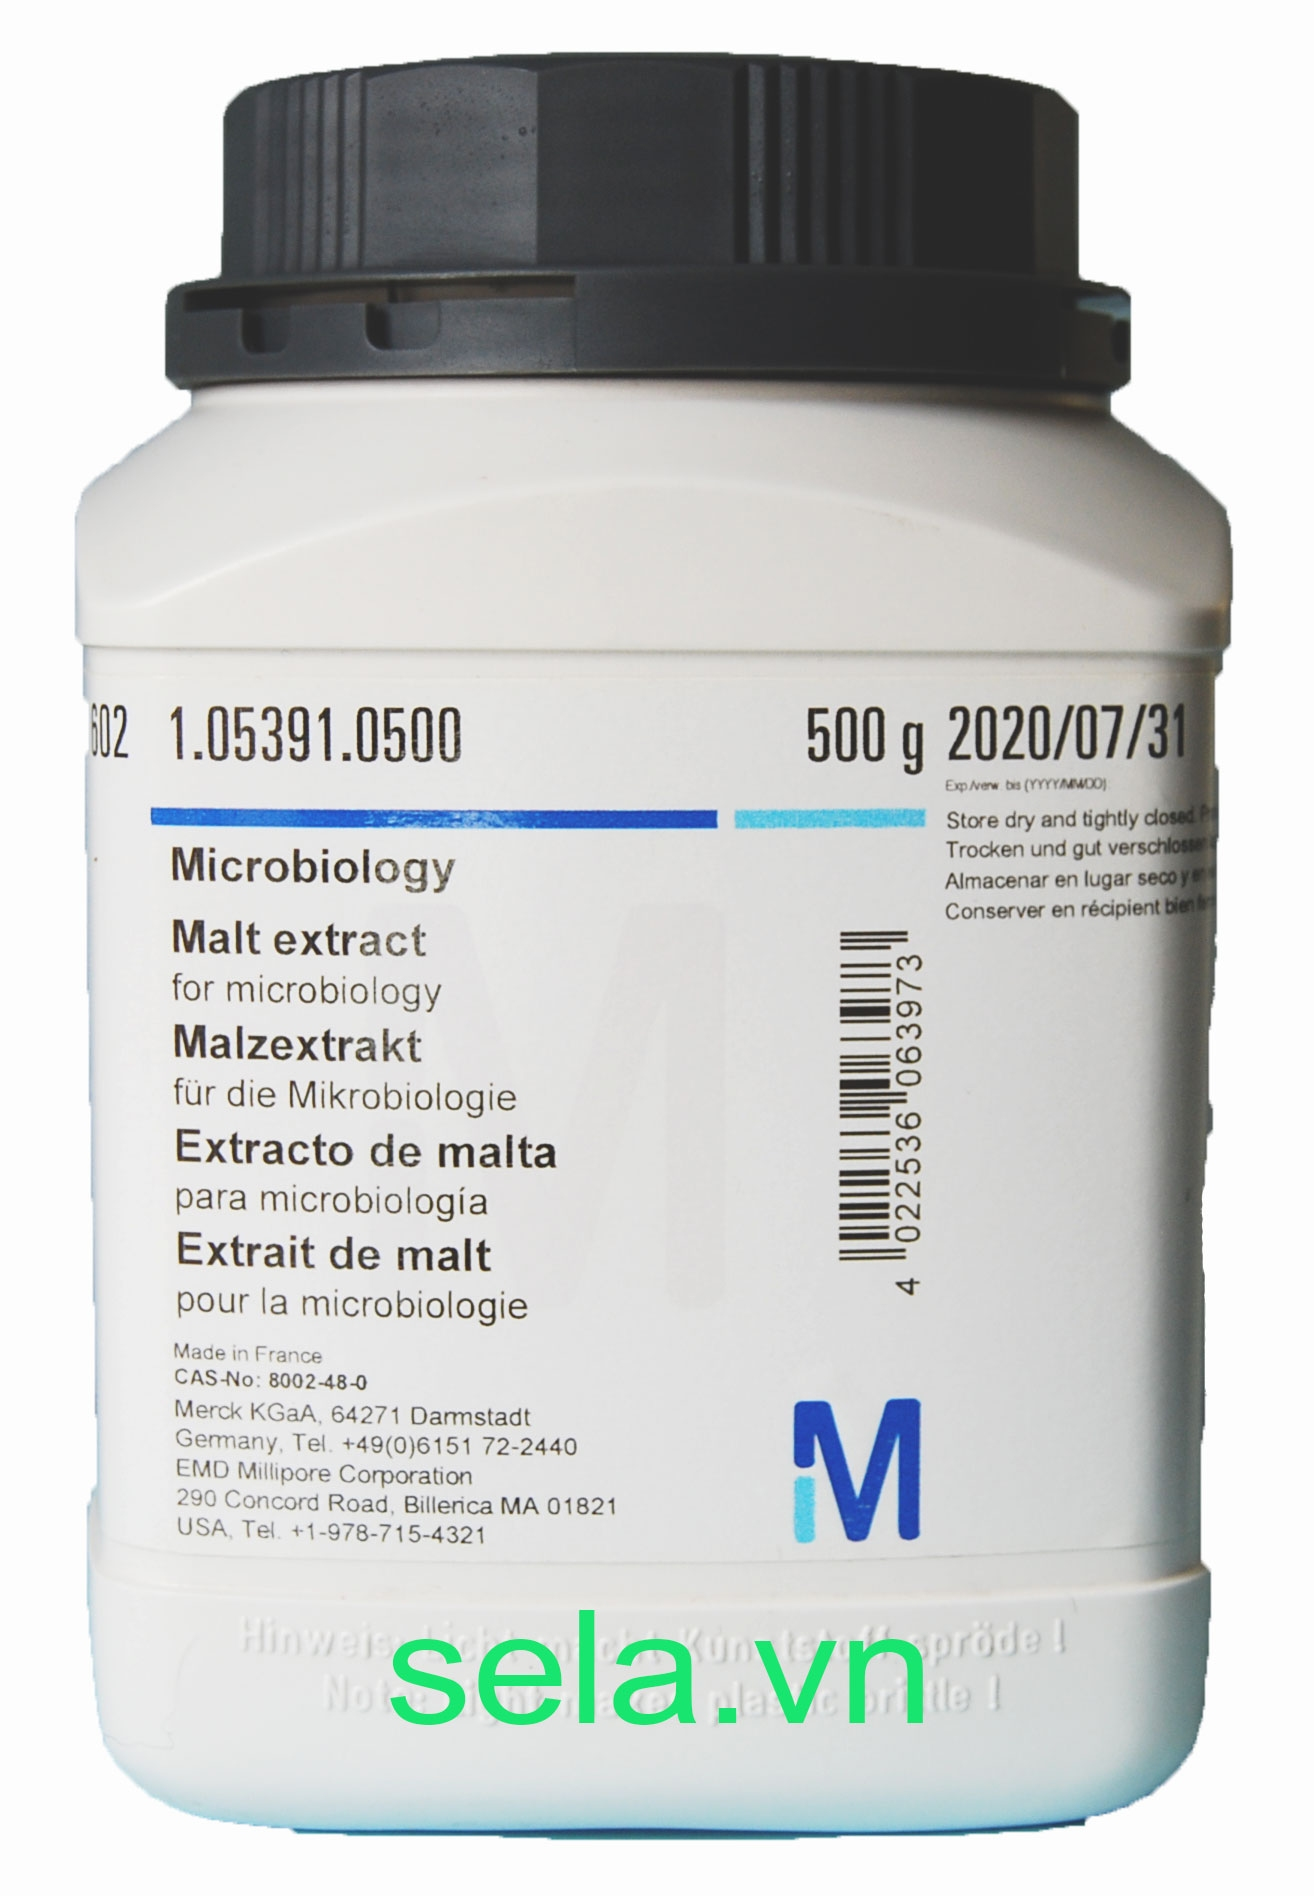 Malt extract for microbiology